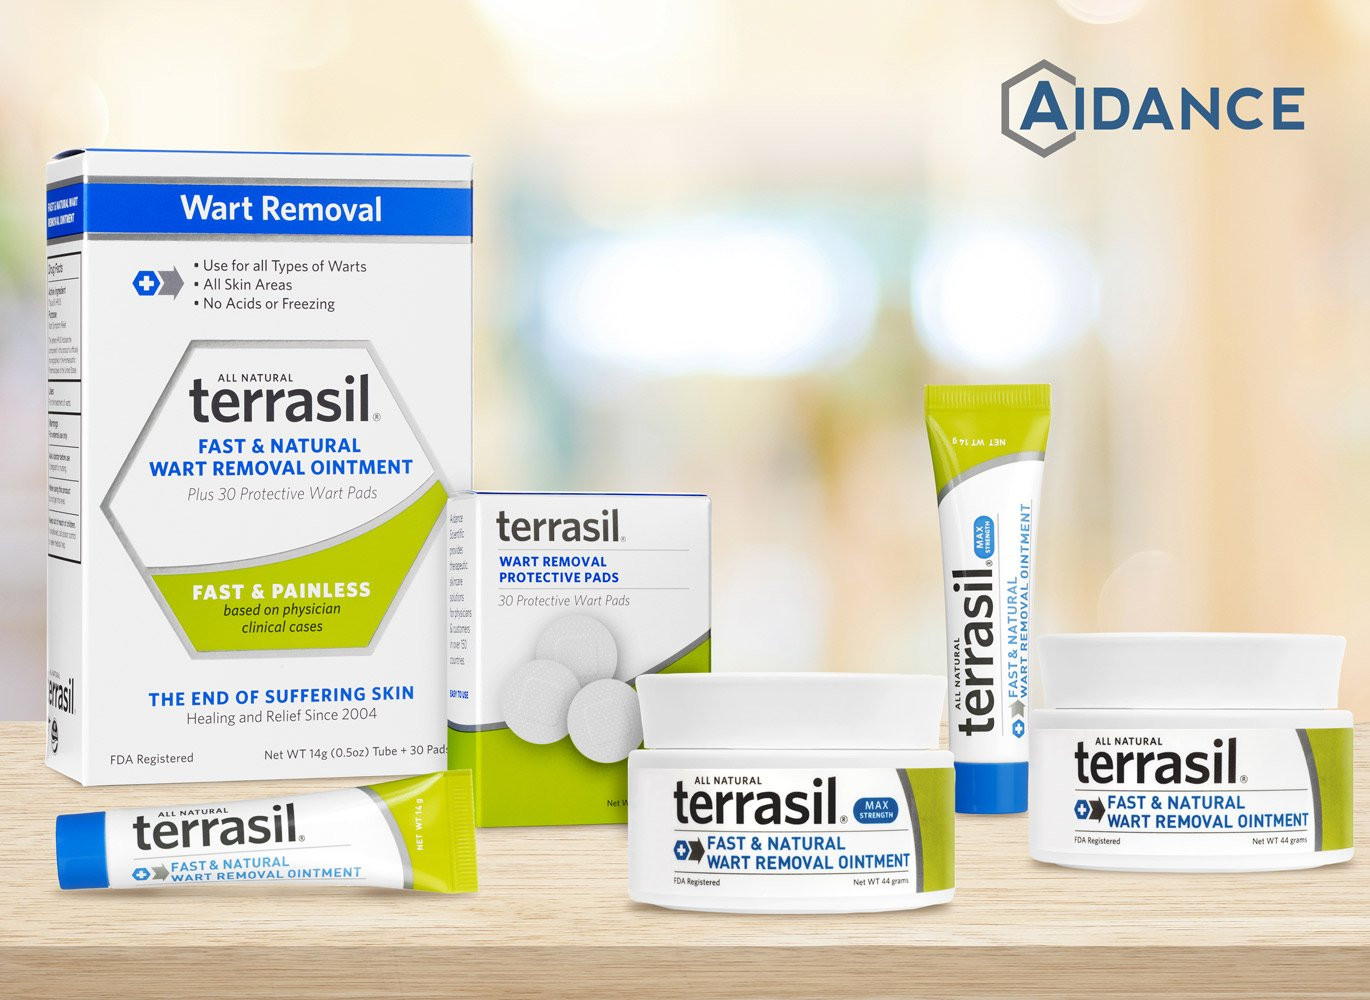 Wart Remover - Safe for Sensitive Skin Dr Recommended 100% Guaranteed All Natural Pain Free Salicylic Acid Free Patented Treatment for Plantar Genital Facial Warts by Terrasil by Aidance Skincare & Topical Solutions (Image #9)